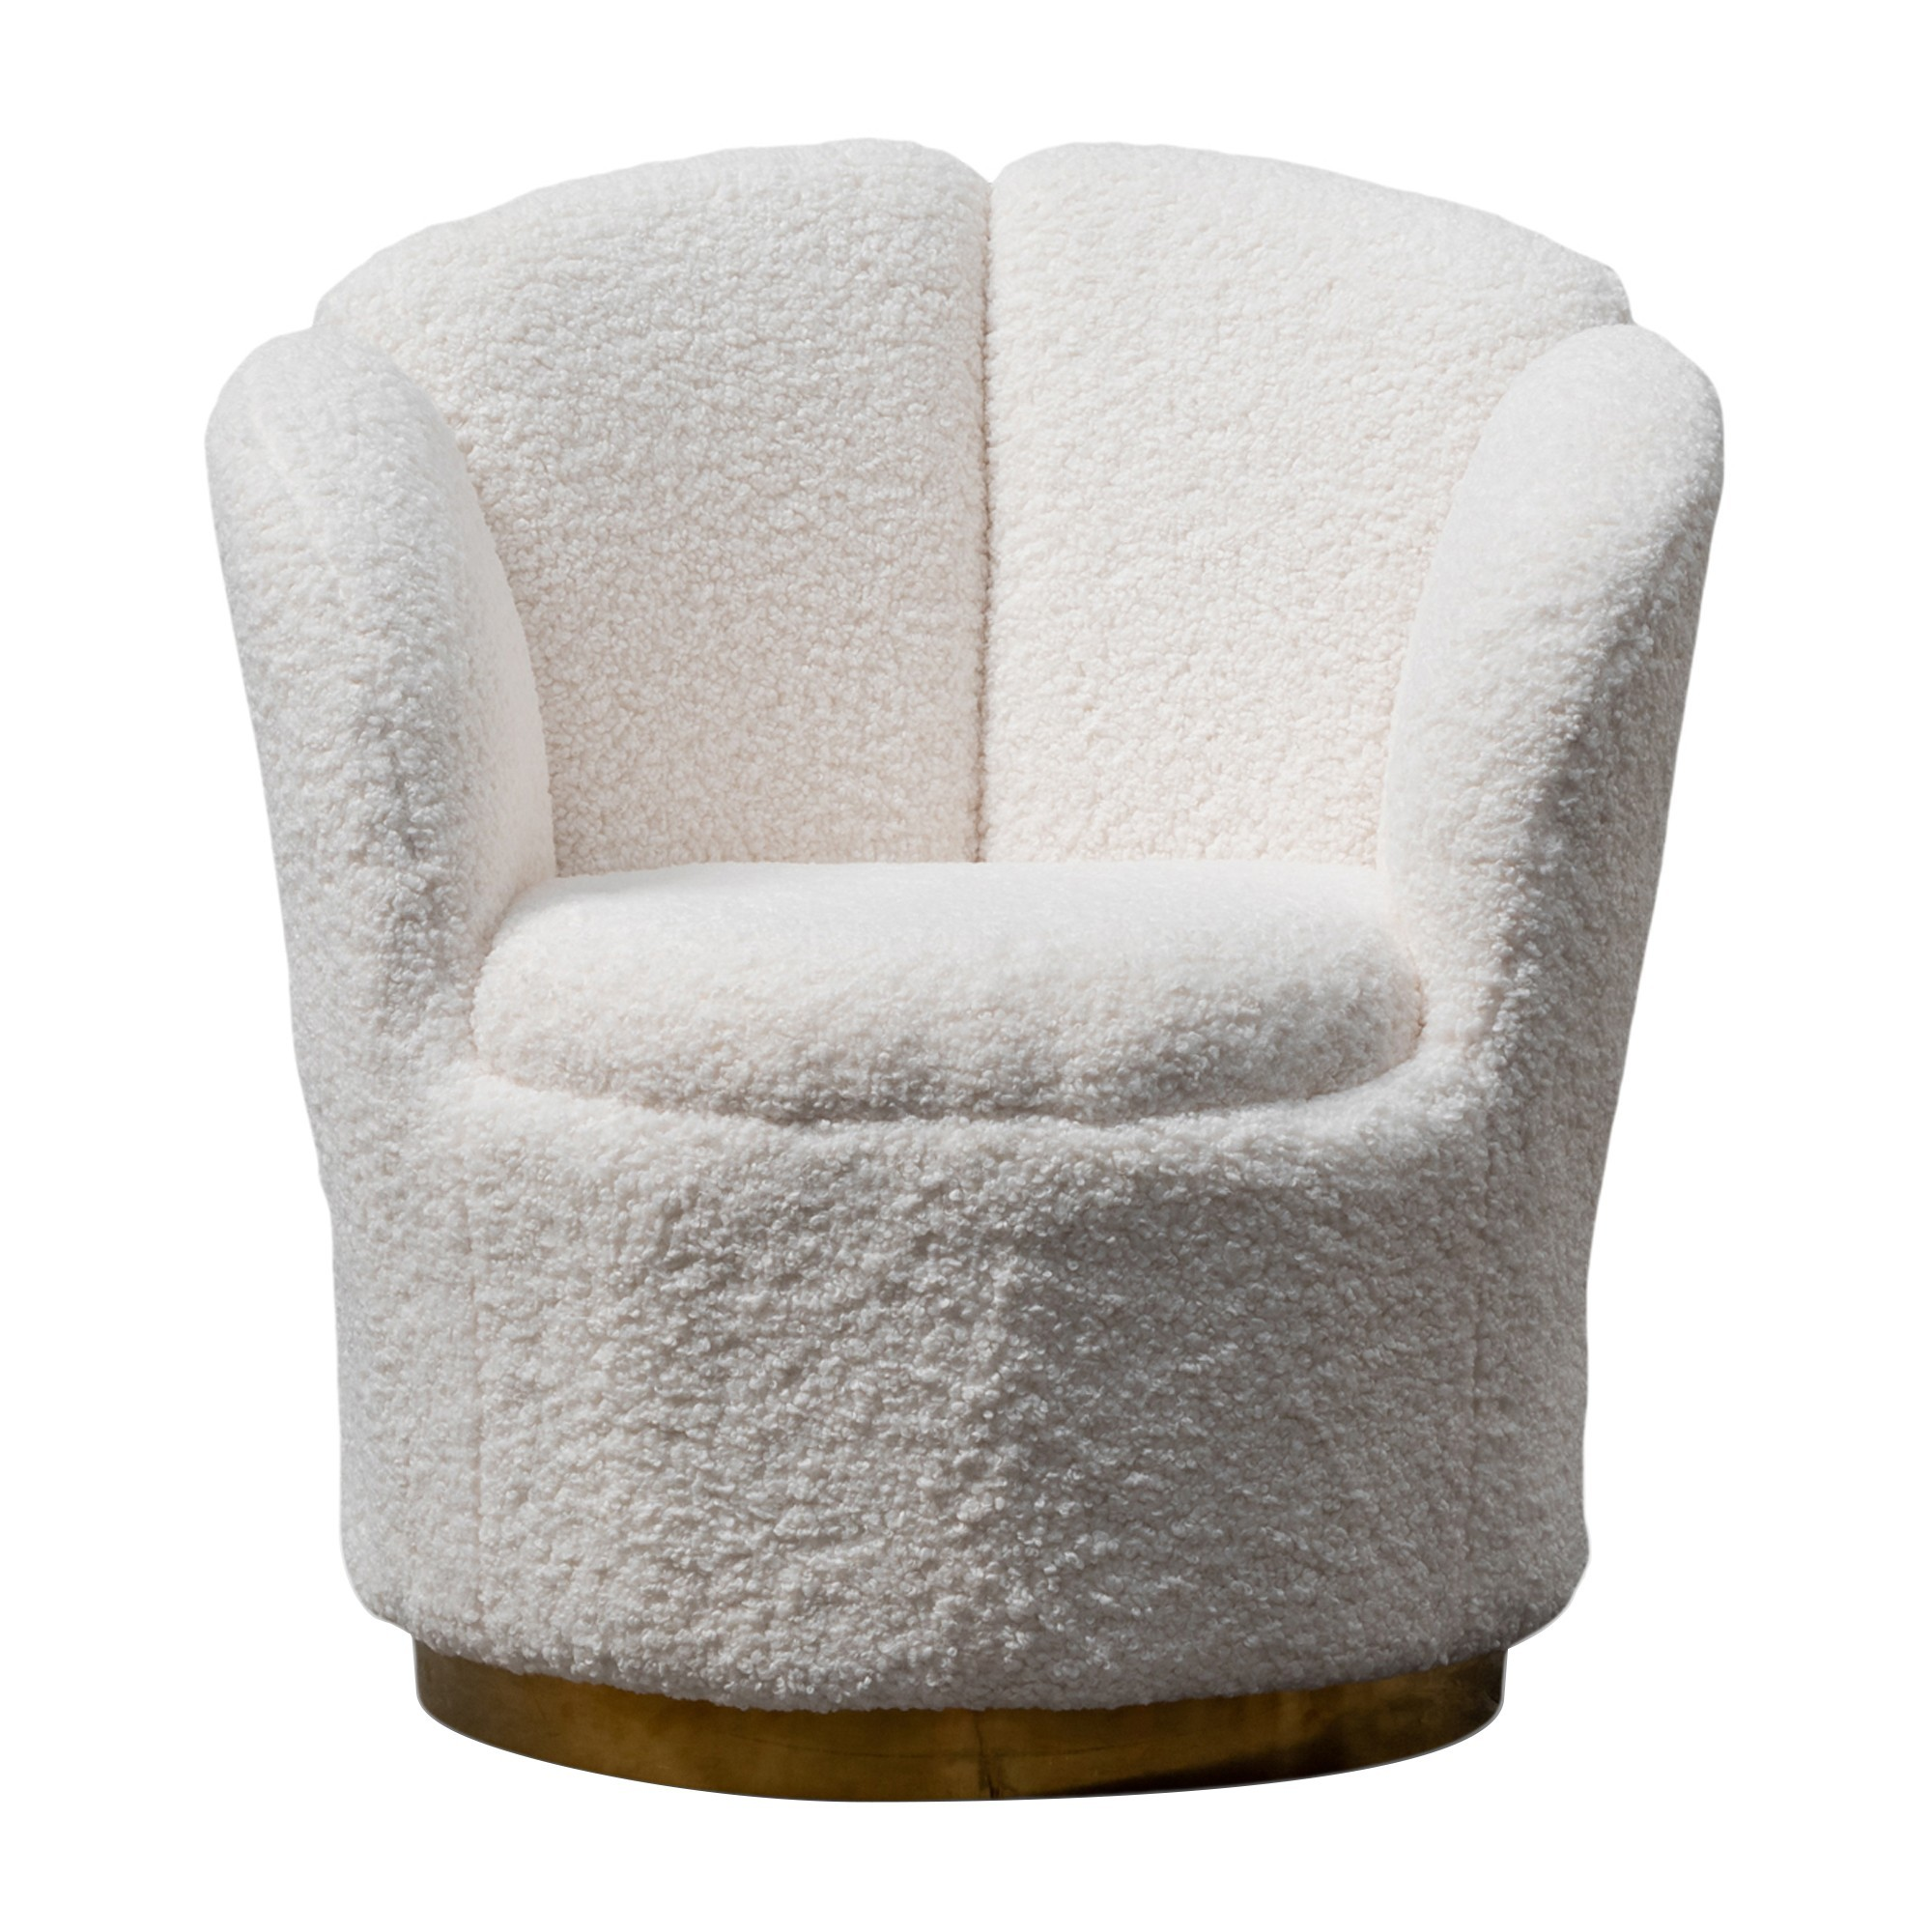 Blount Synthetic Wool Lounge Chair